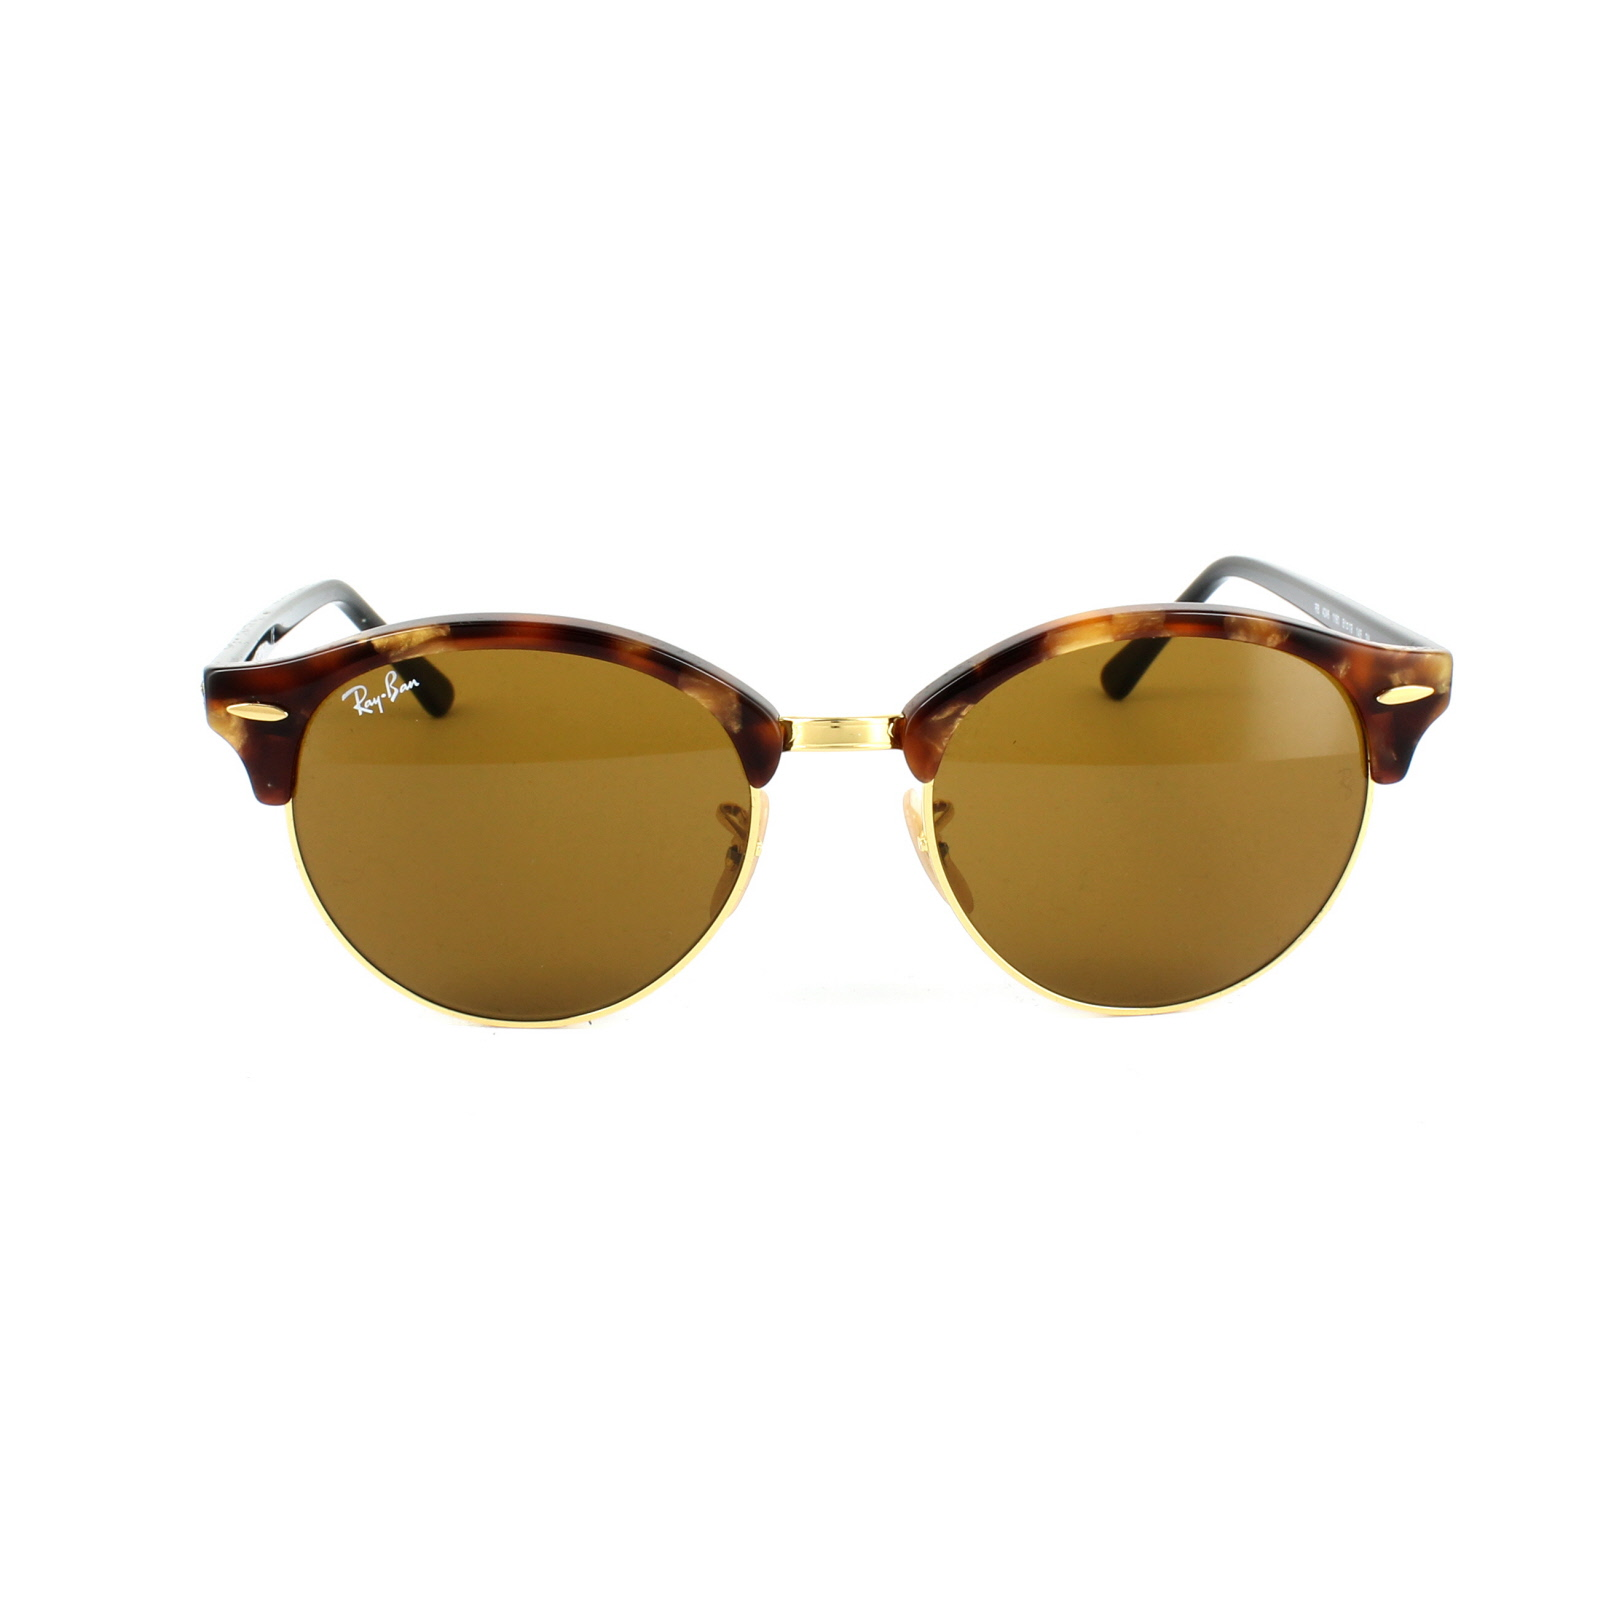 78c4bc6c93e Details about Ray-Ban Sunglasses Clubround 4246 1160 Spotted Brown Havana    Gold Brown